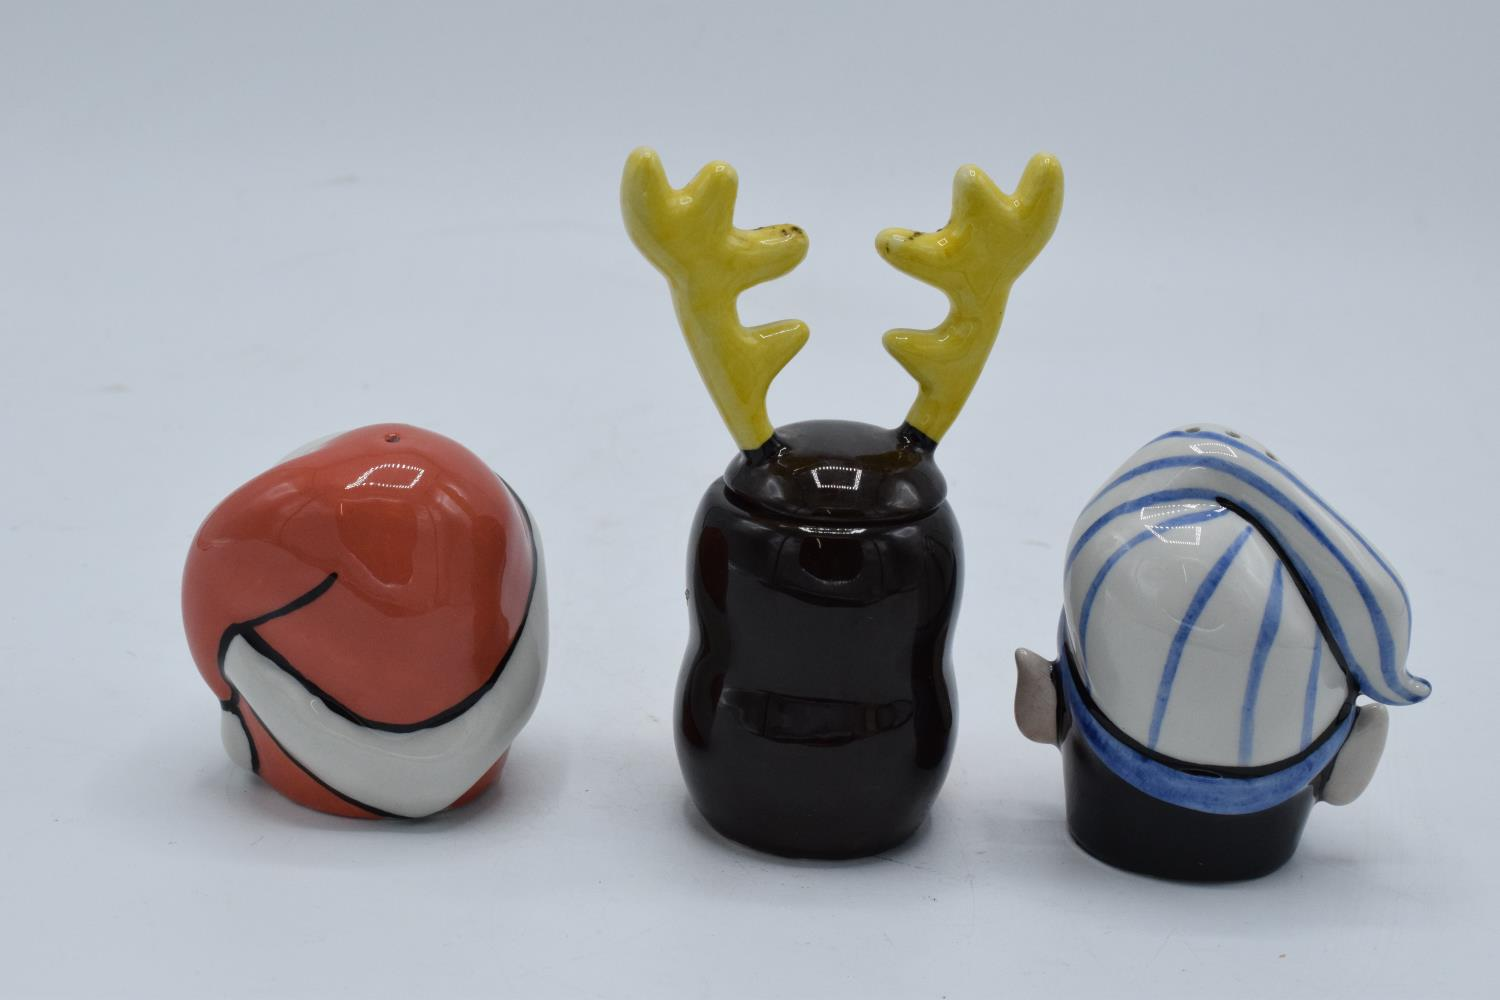 Lorna Bailey cruet set in the form of santa, a snowman and a reindeer (3). In good condition with no - Image 2 of 4